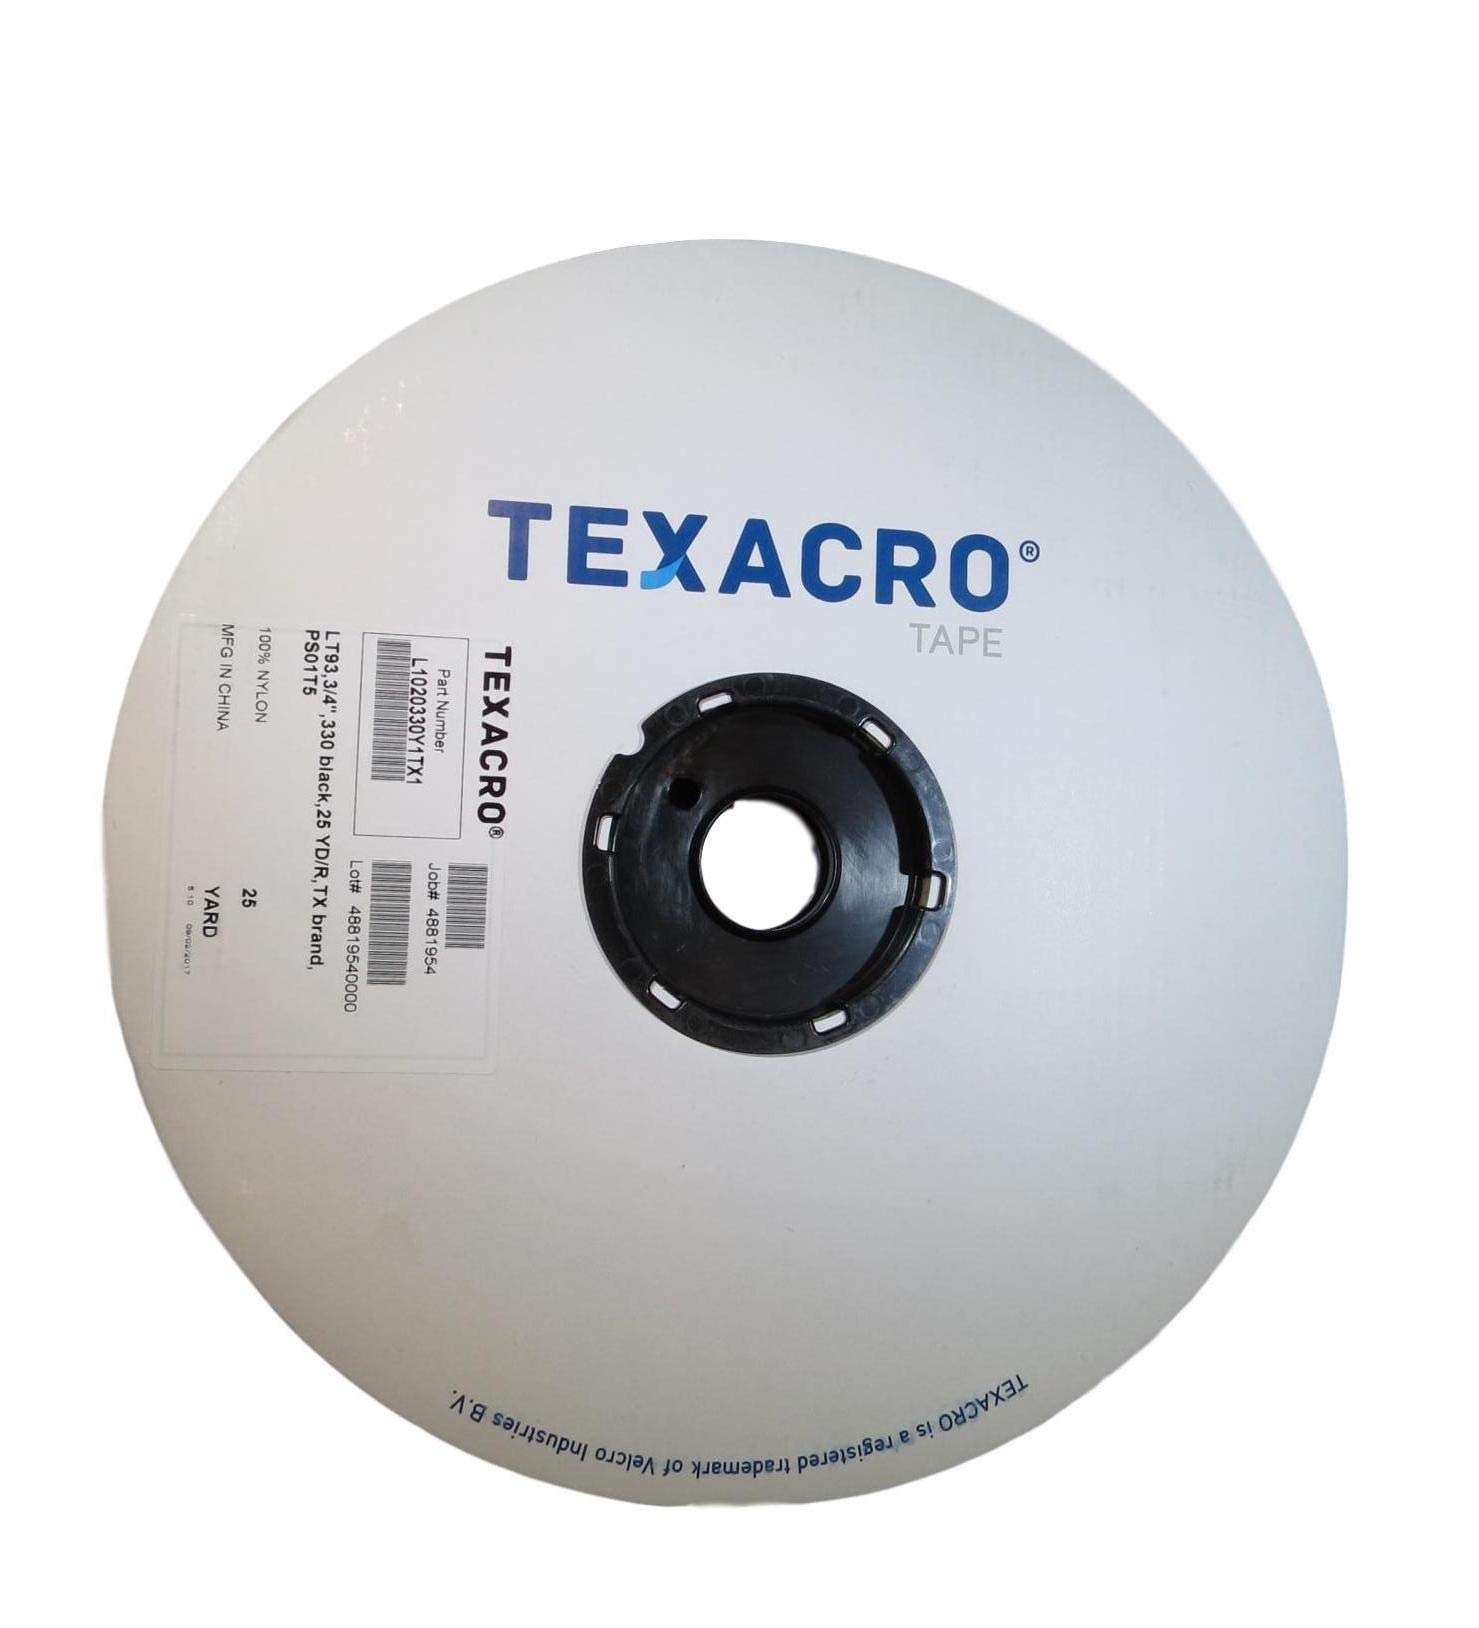 T.R.U. Texacro Hook or Loop Fasteners with Residue Free Adhesive. Available in Multiple Sizes and Colors (Loop-White, 3/4'') by Texacro